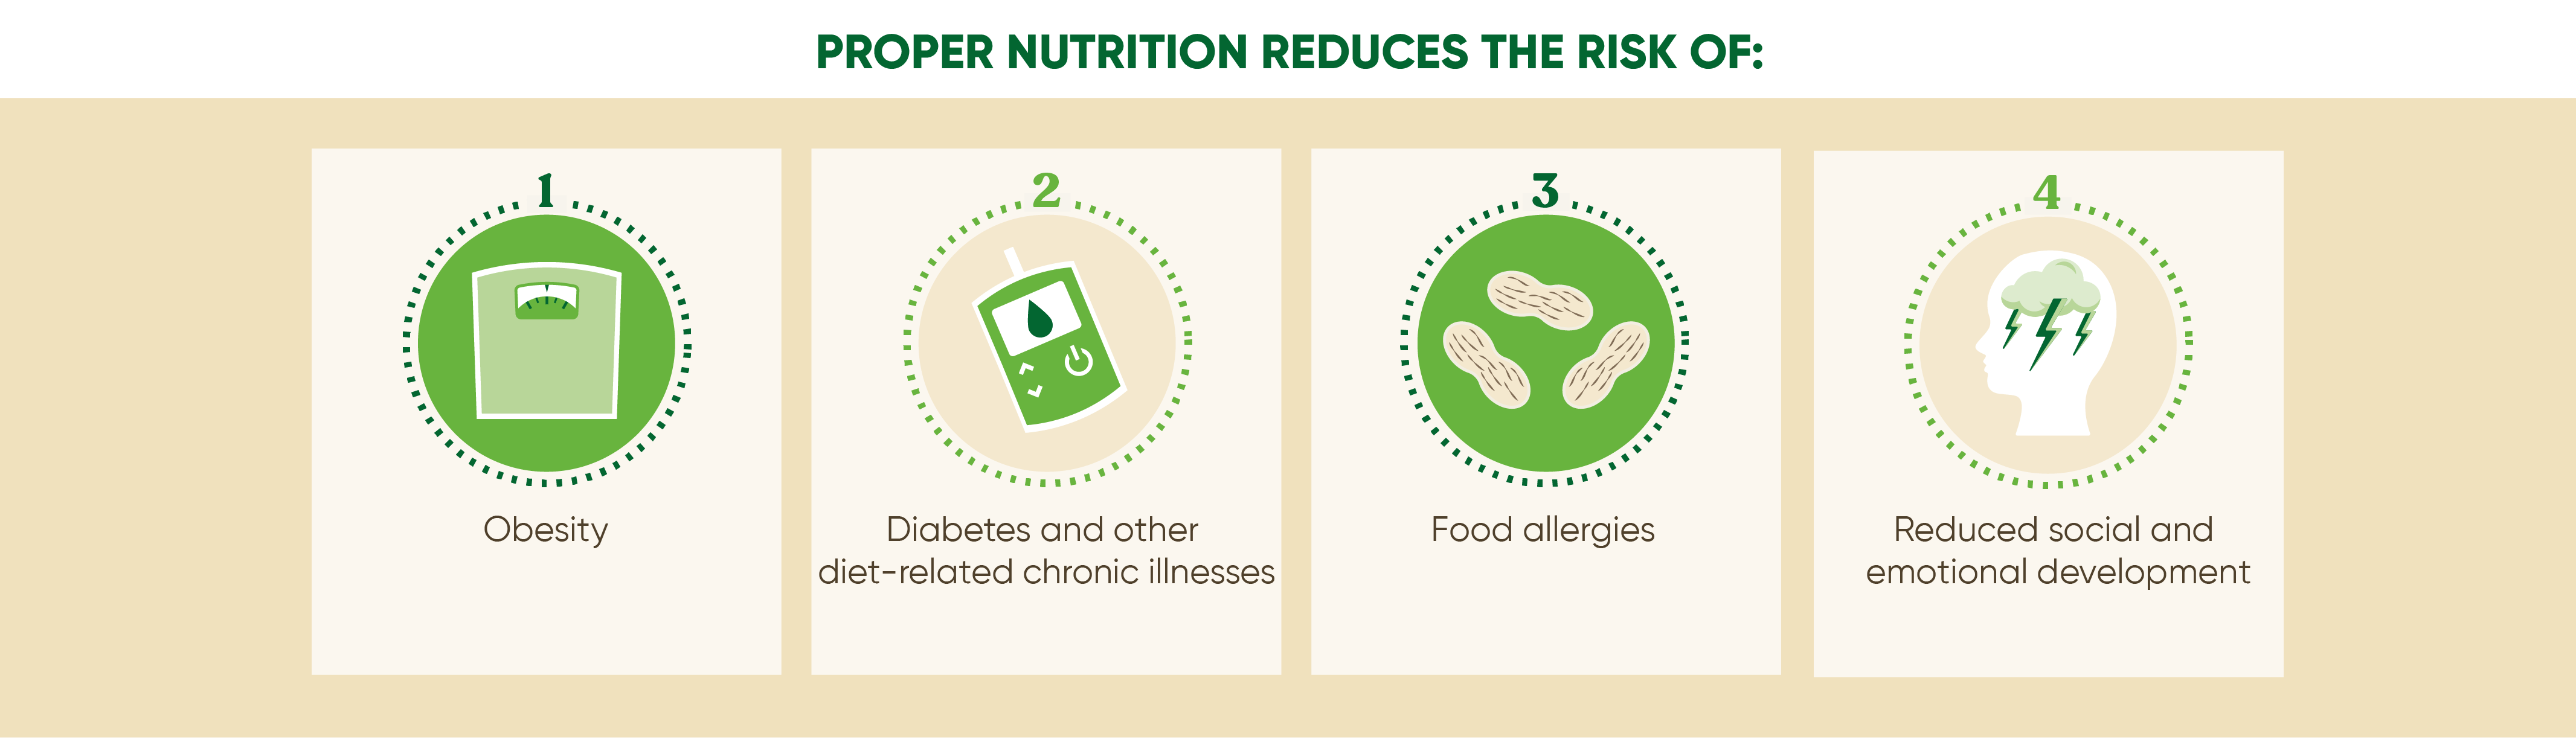 Proper nutrition reduces risks to physical and mental health